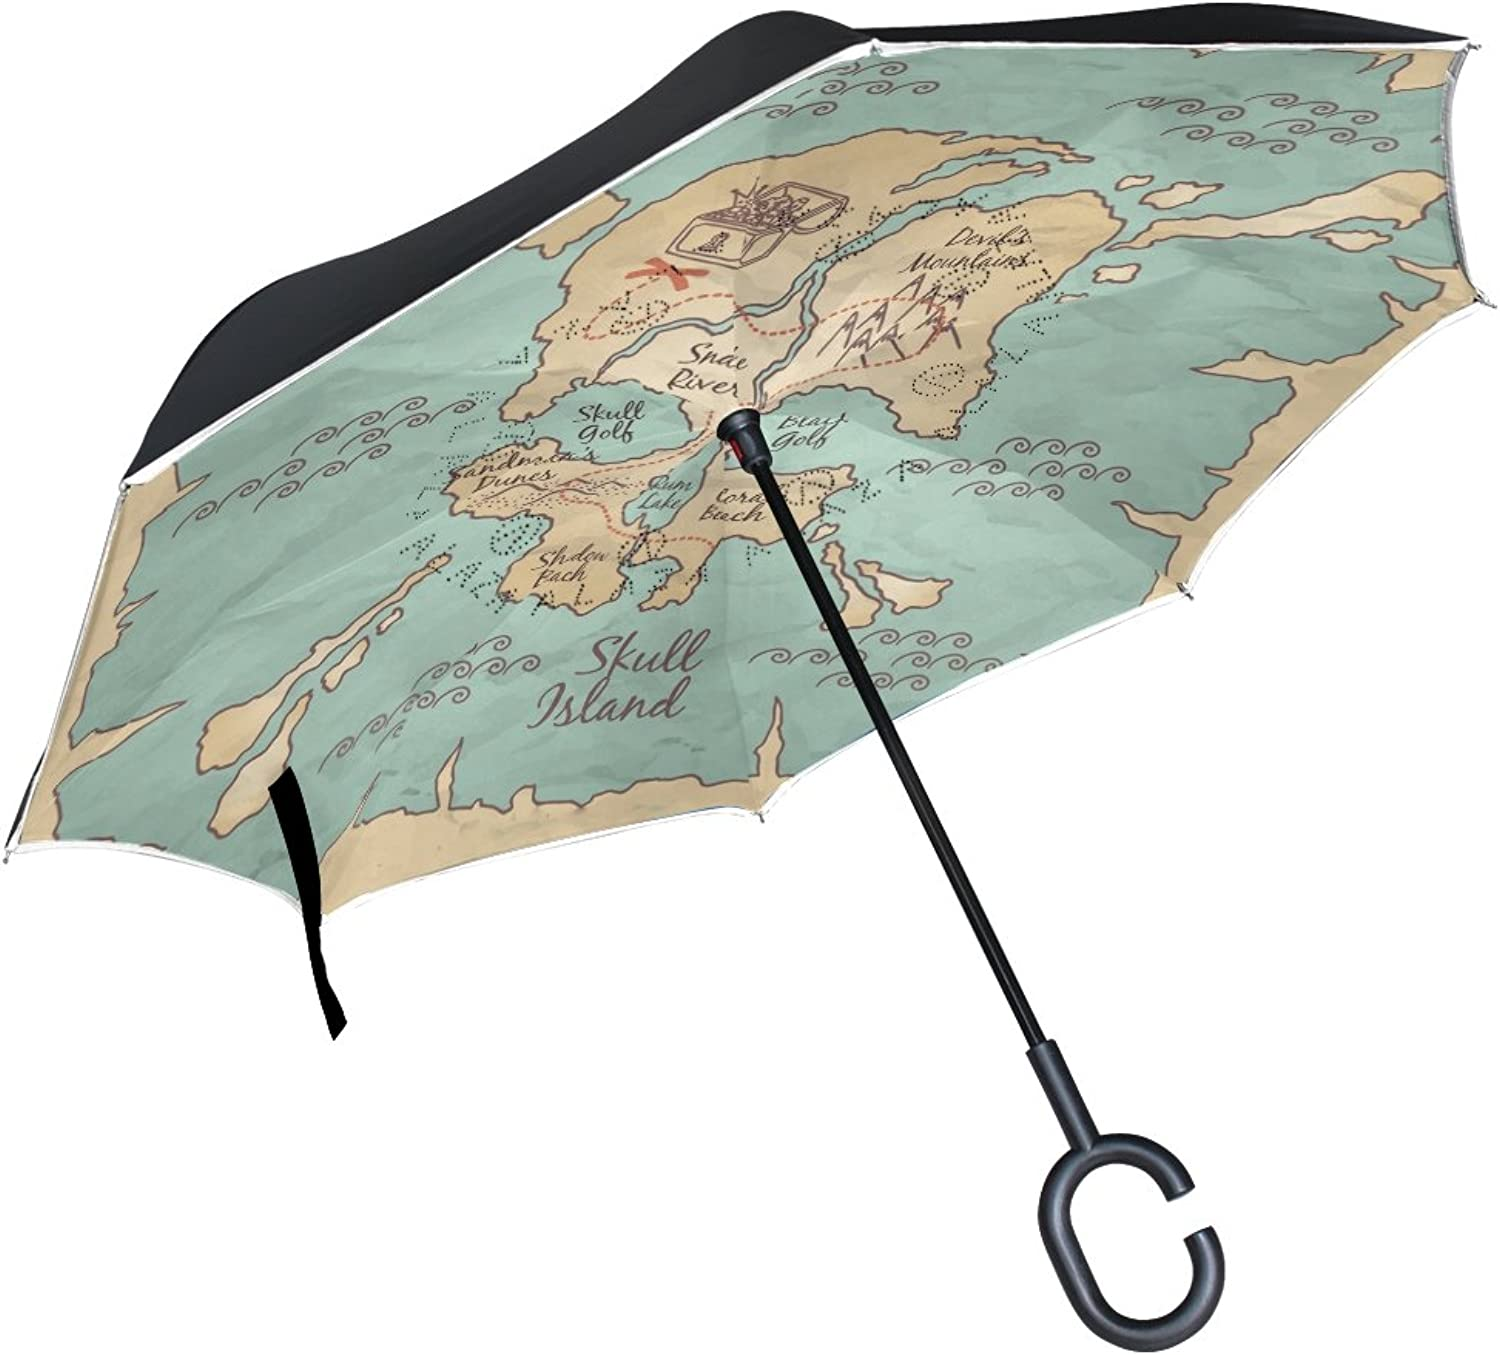 OREZI Map BackgroundIngreened Umbrella Double Layer Reverse Umbrella Windproof UV Predection CShaped SelfStand Umbrella for Car Rain Outdoor Travel Woman Man